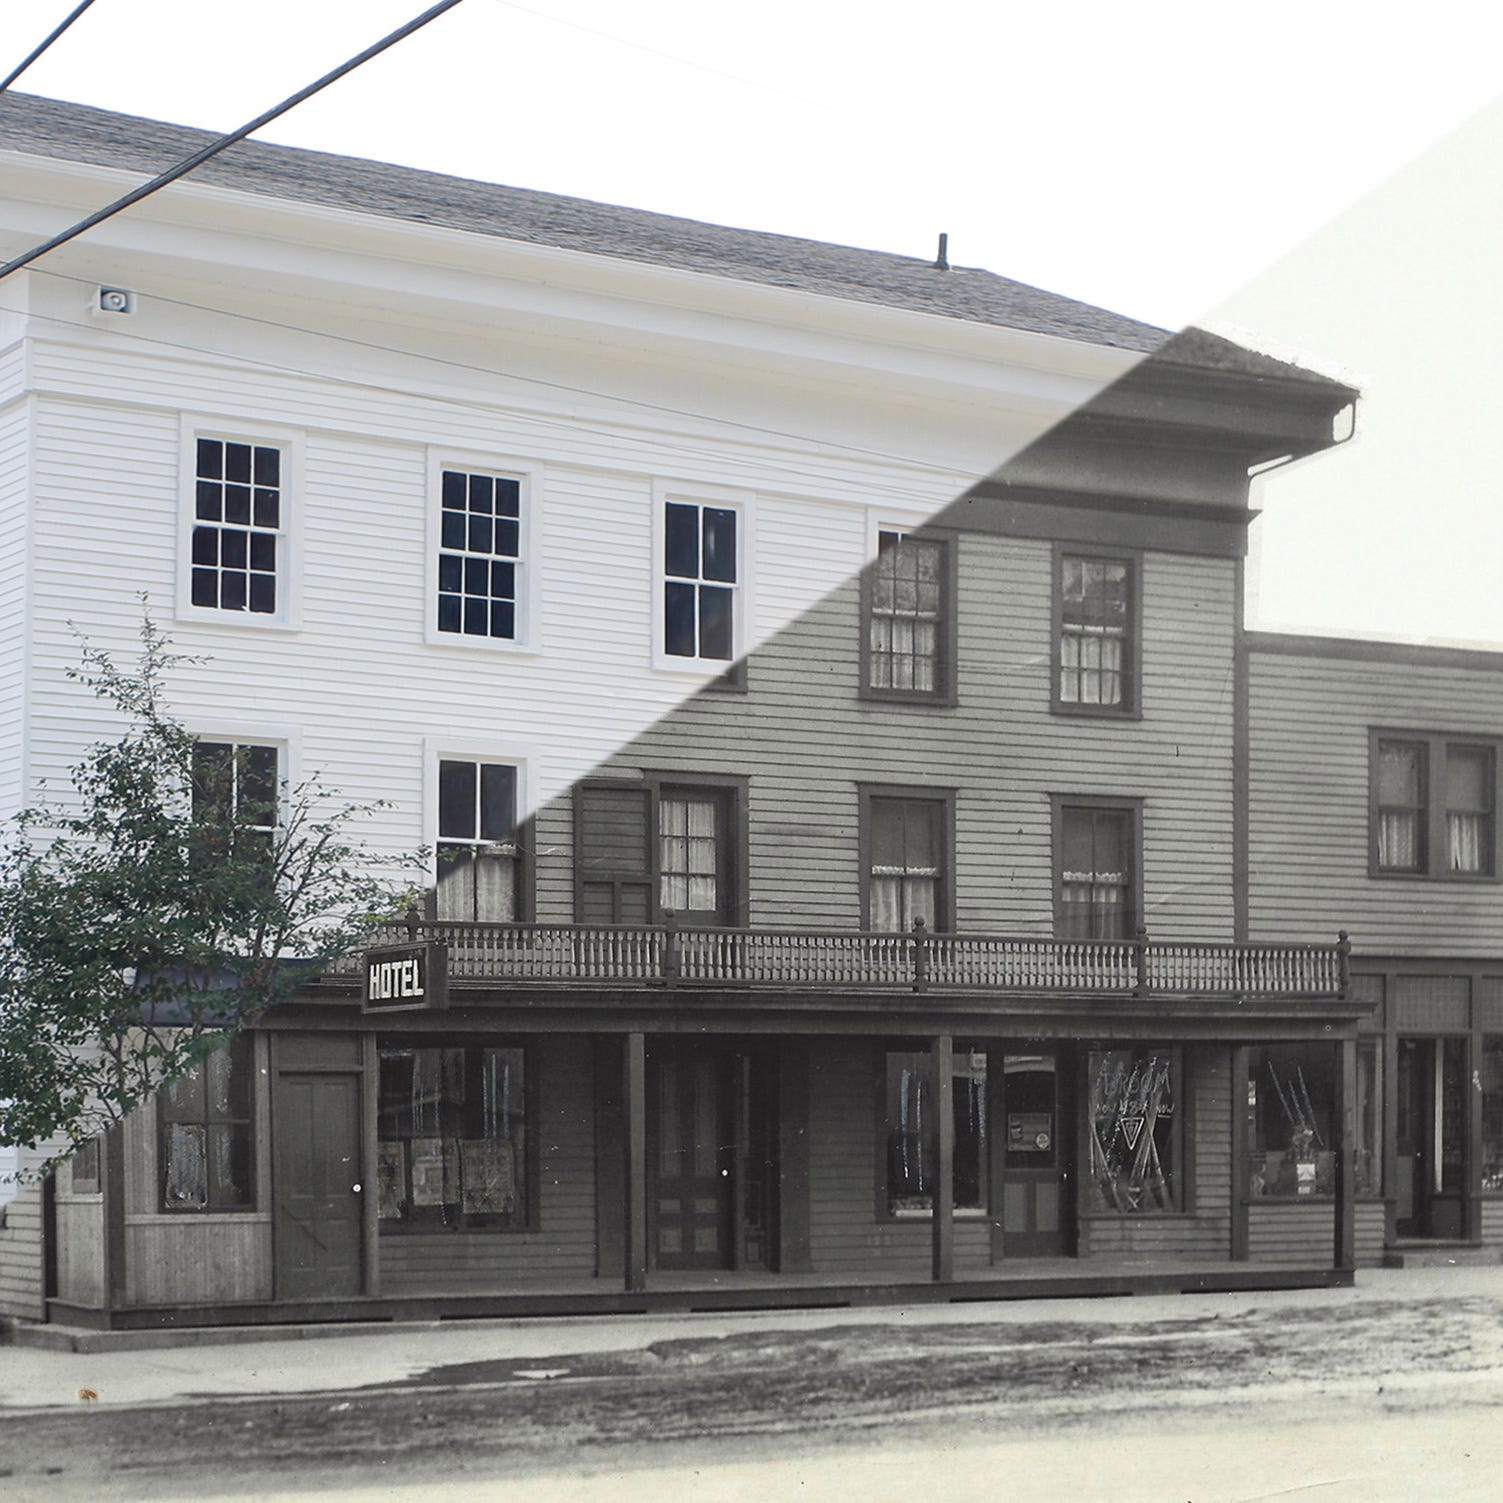 Throwback Thursday | Sheboygan Falls Thorpe Hotel